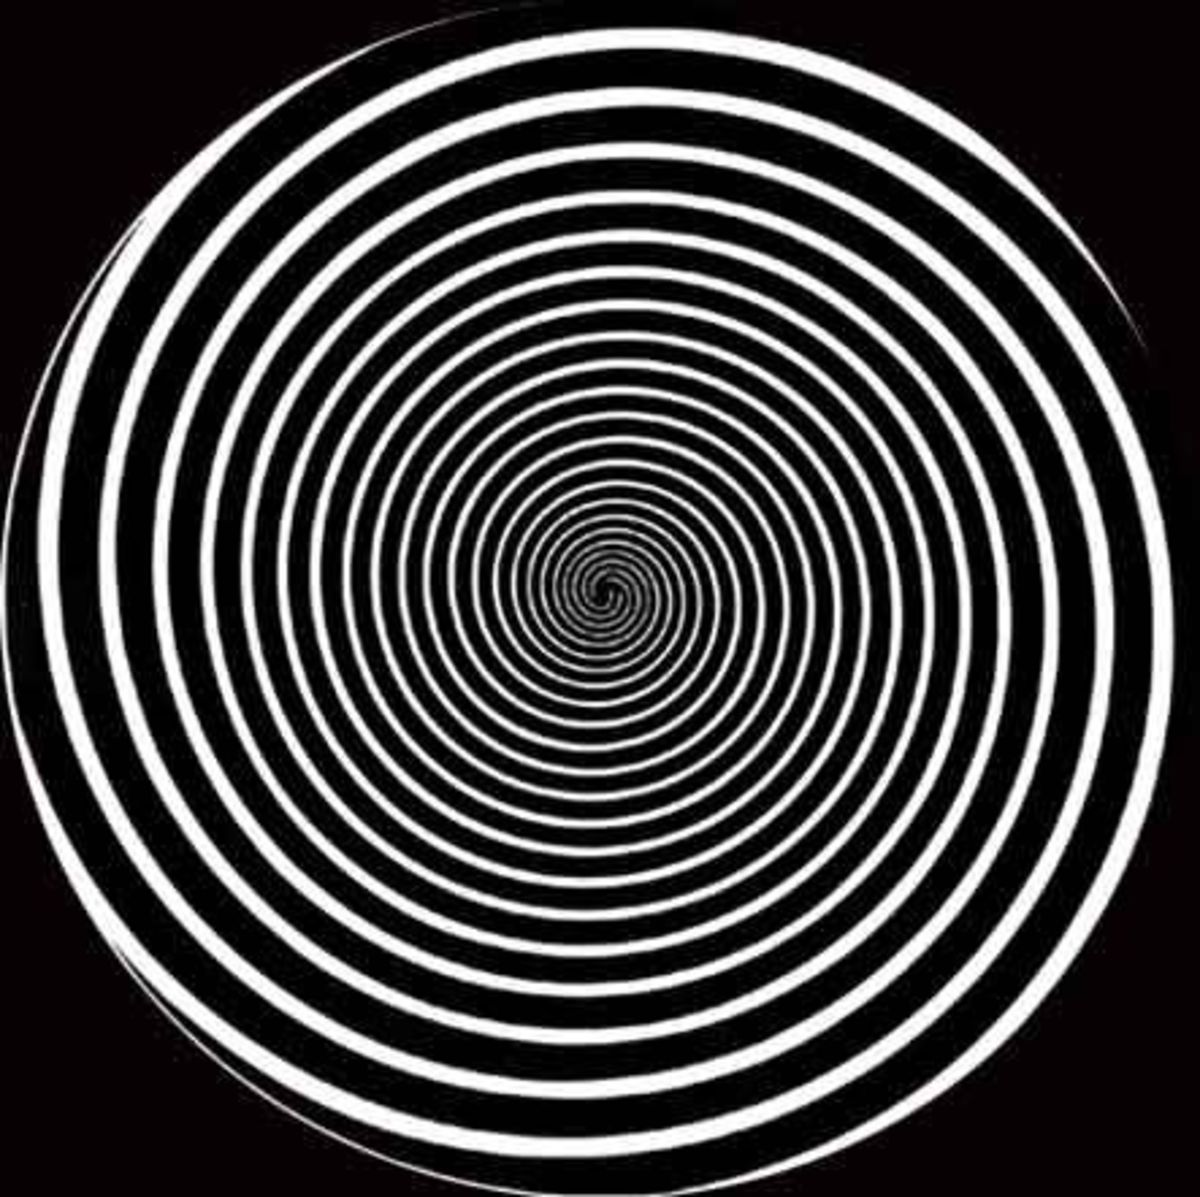 The classic hypnosis spiral.